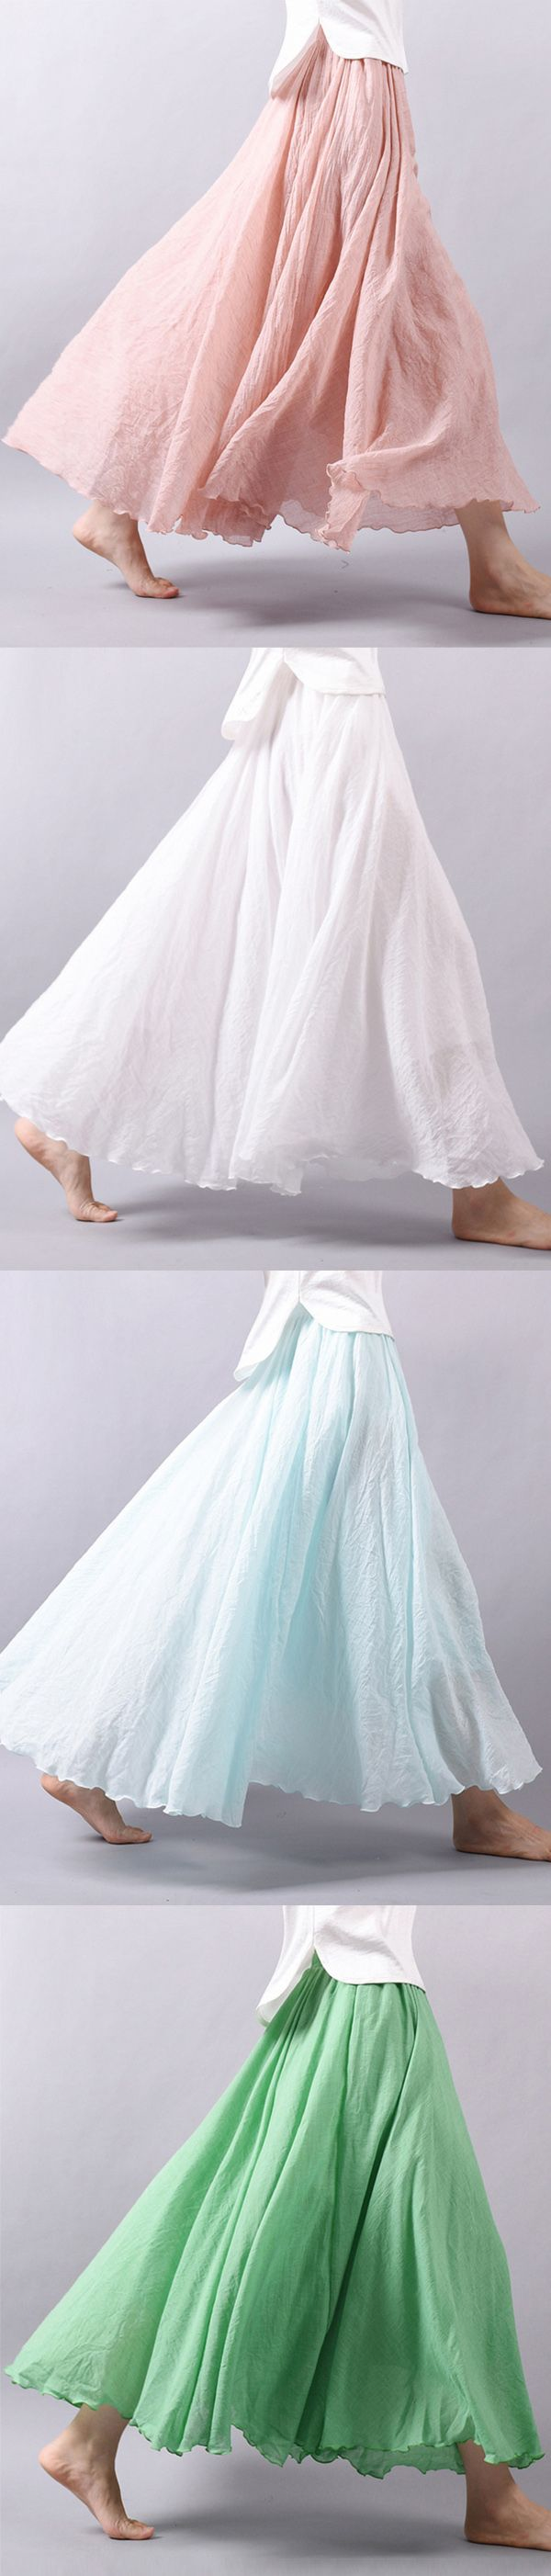 US$20.06 Gracila Women Casual Loose Cotton Pure Color Skirt_Women Vintage Loose Maxi Skirt_Summer Casual Cotton Skirt_Color Summer Maxi Skirt For Women